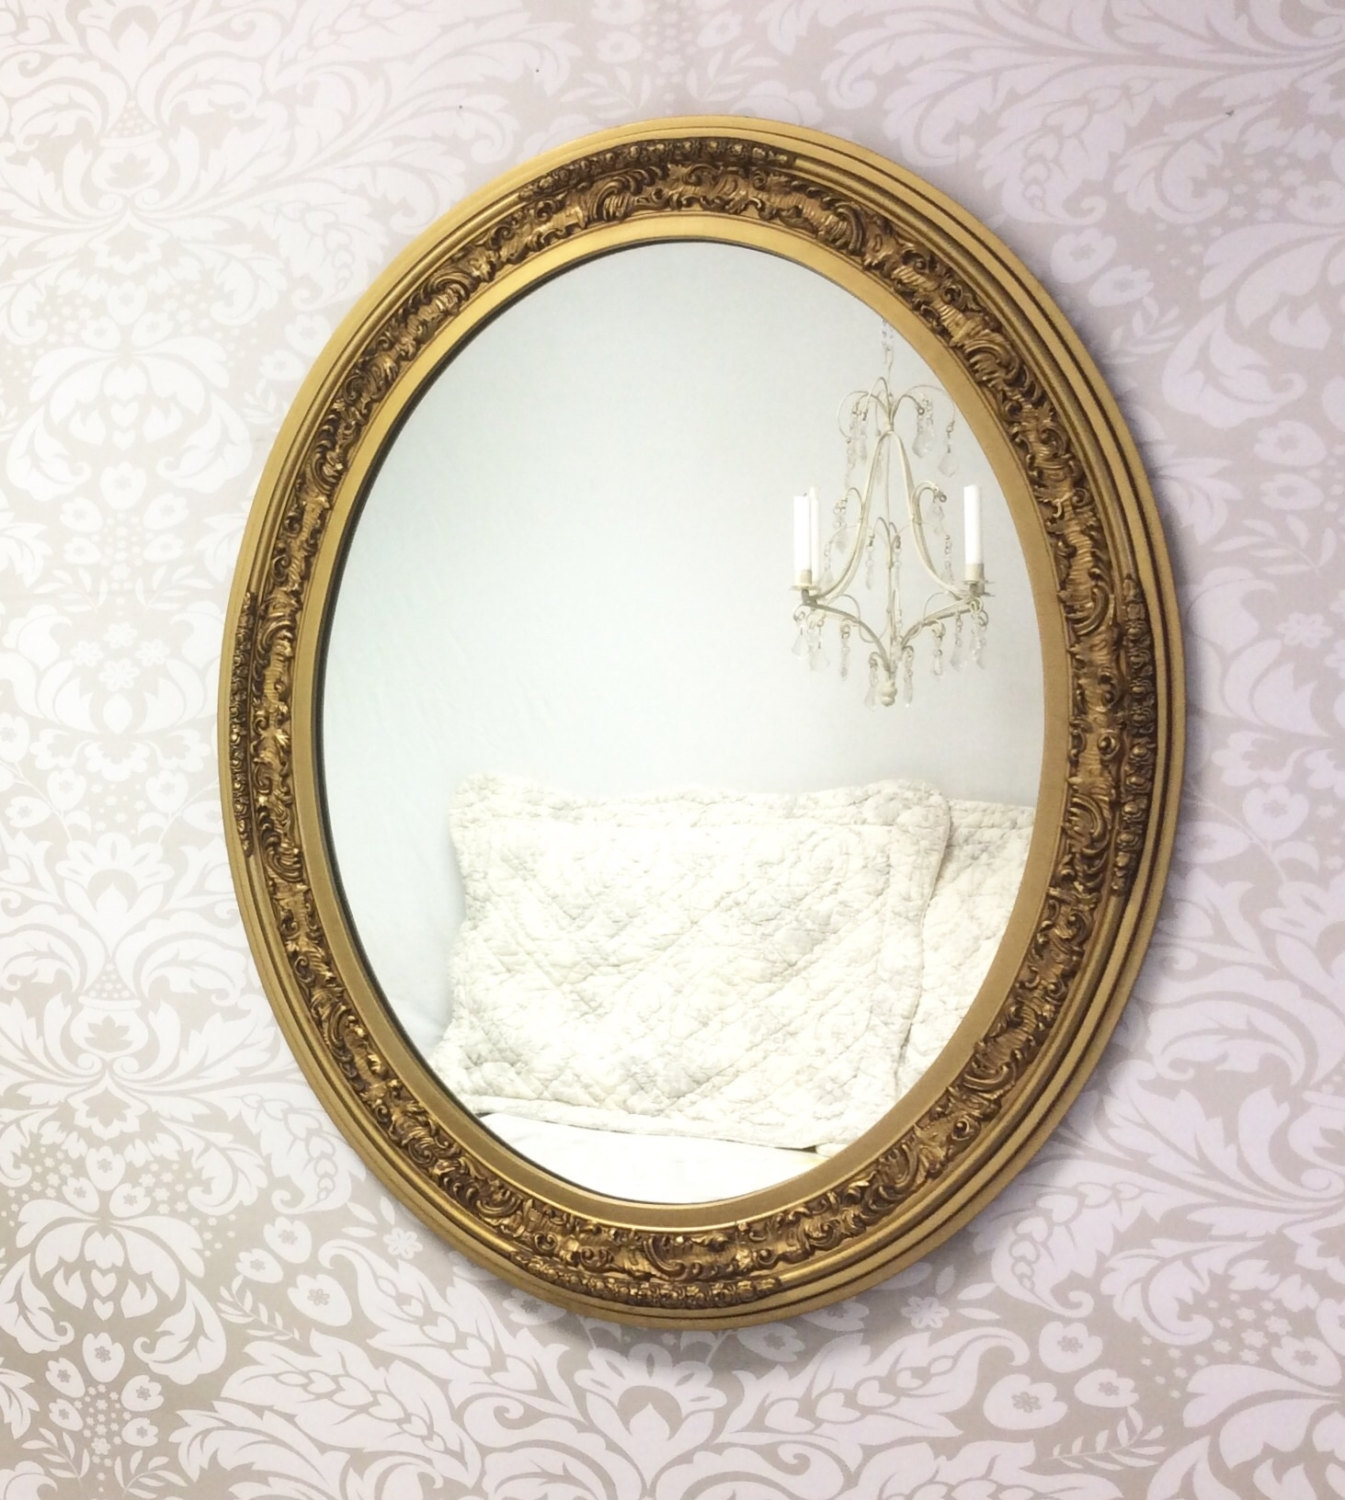 Ornate Gold Mirror Etsy Pertaining To Oval Shabby Chic Mirror (Image 9 of 15)